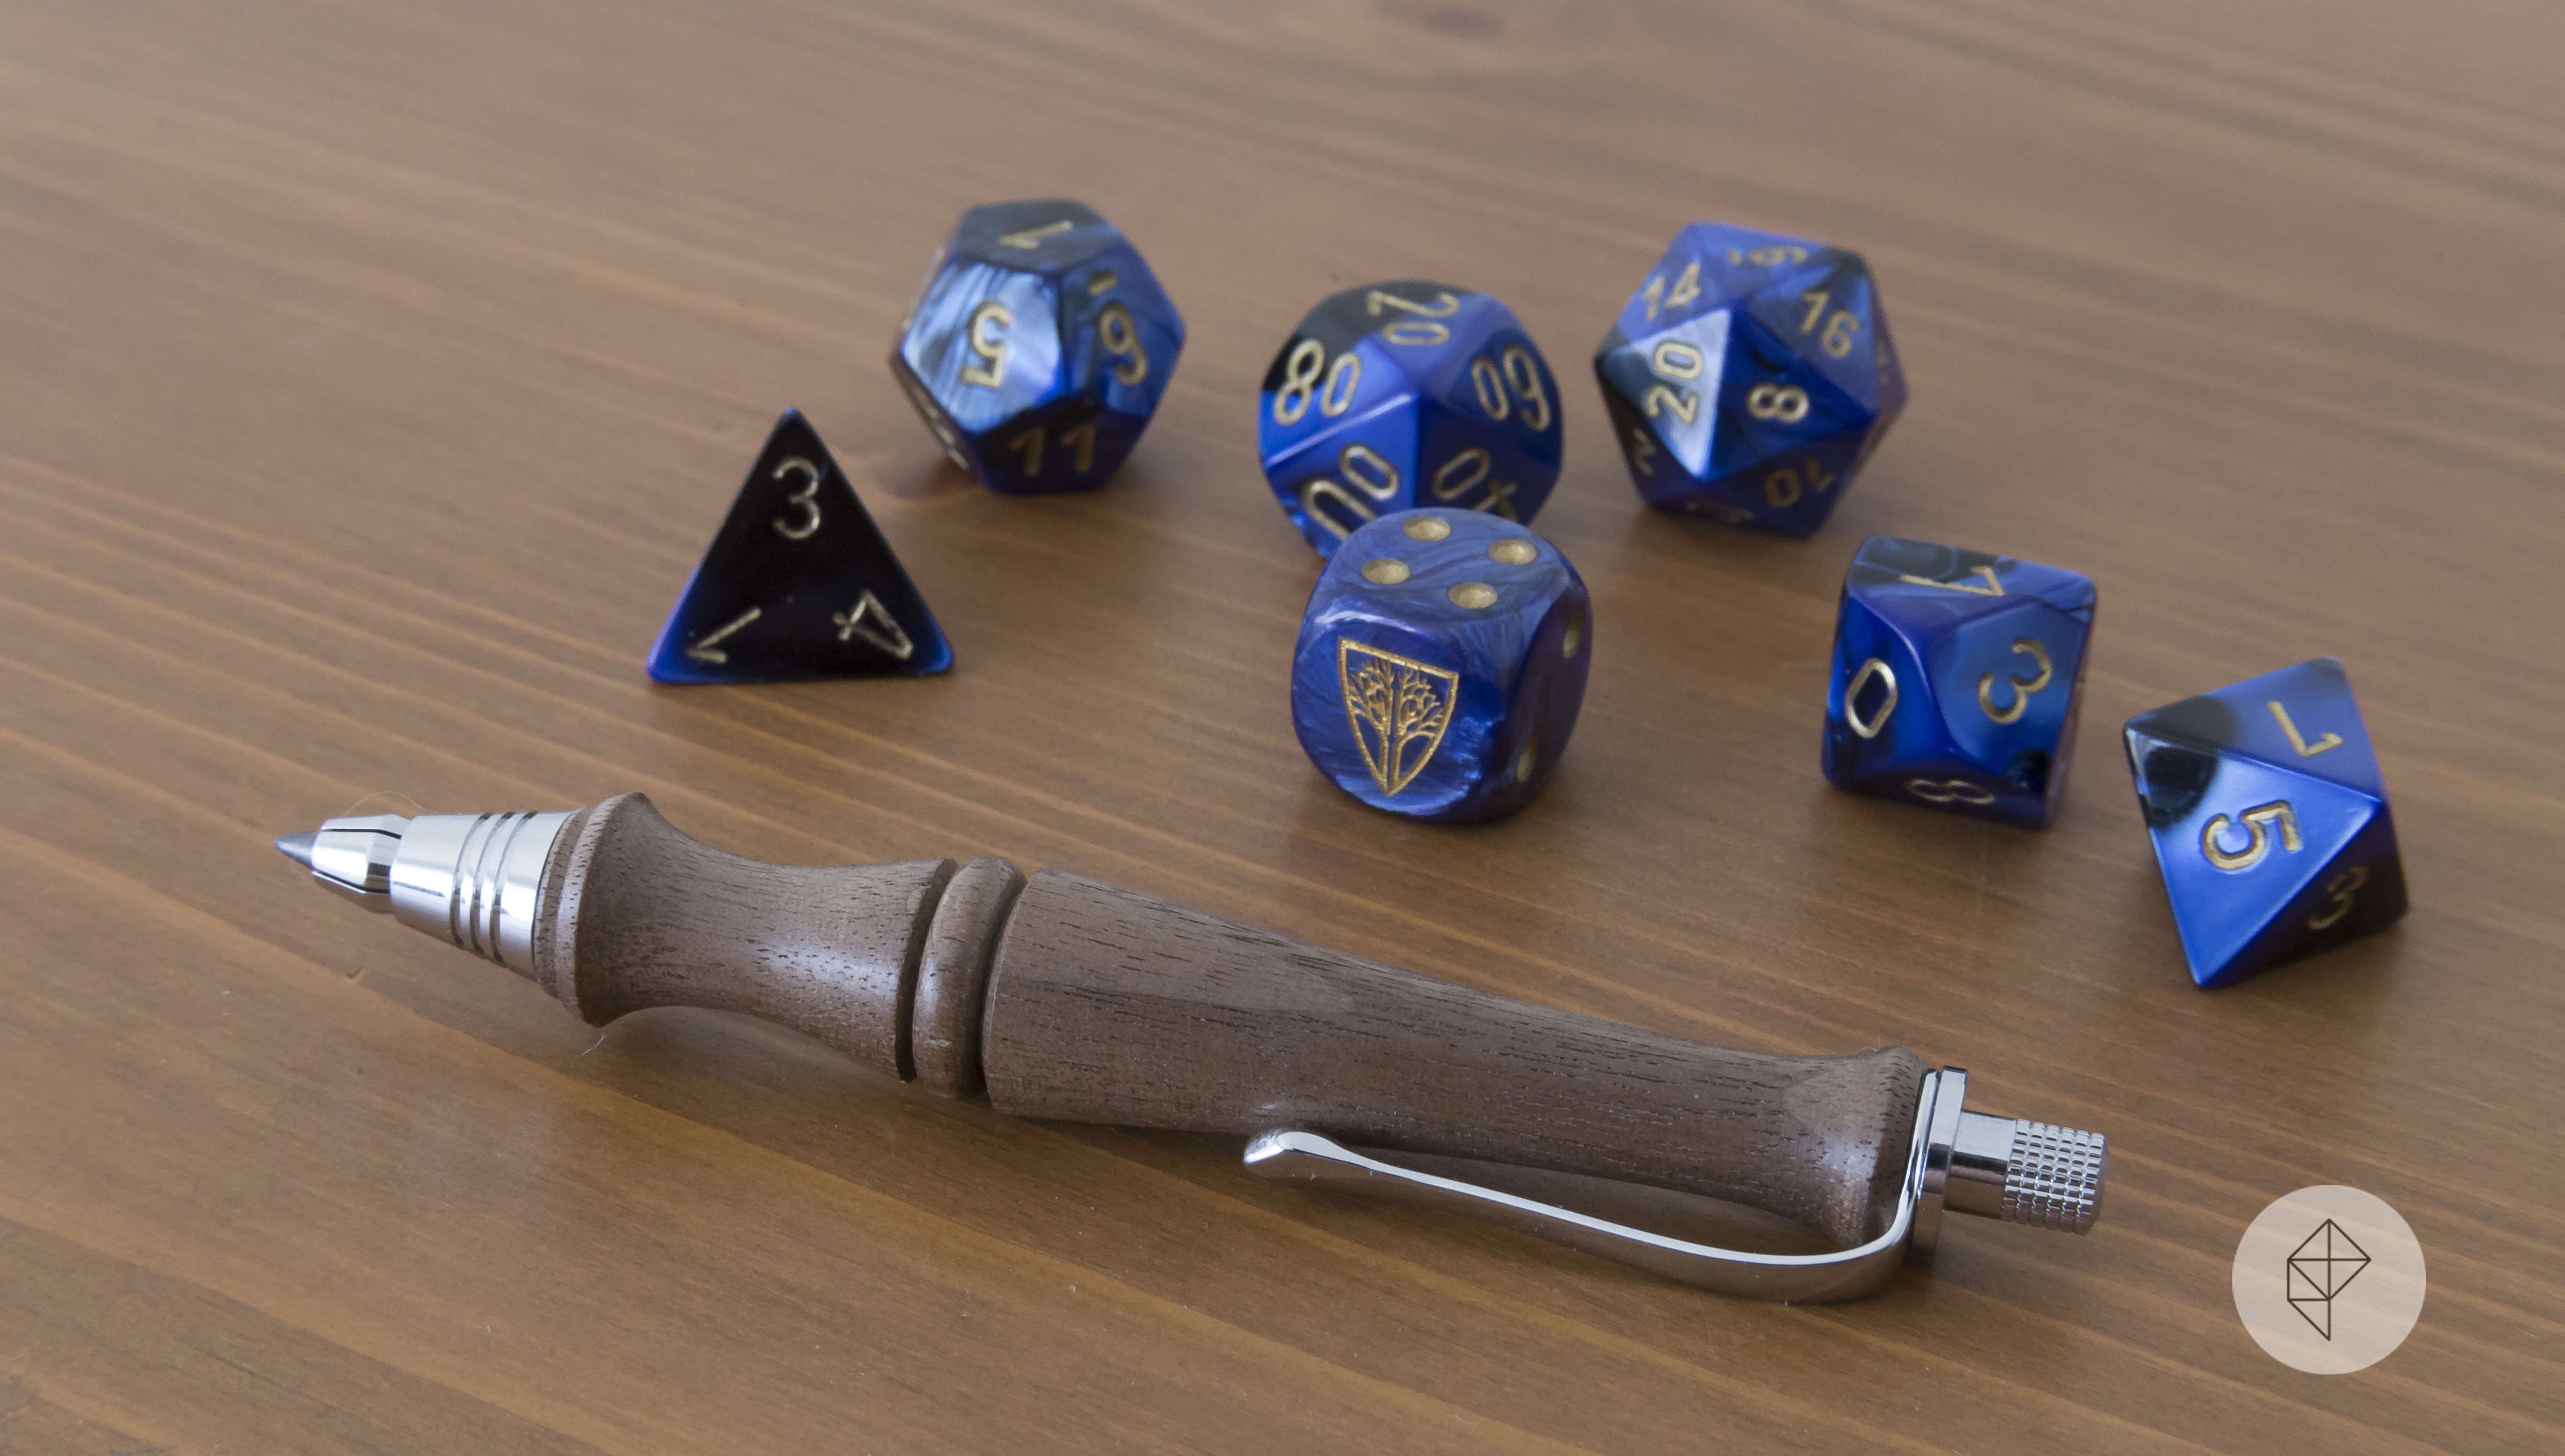 Ditch the dice bag and invest in Wyrmwood's immaculate wooden vault